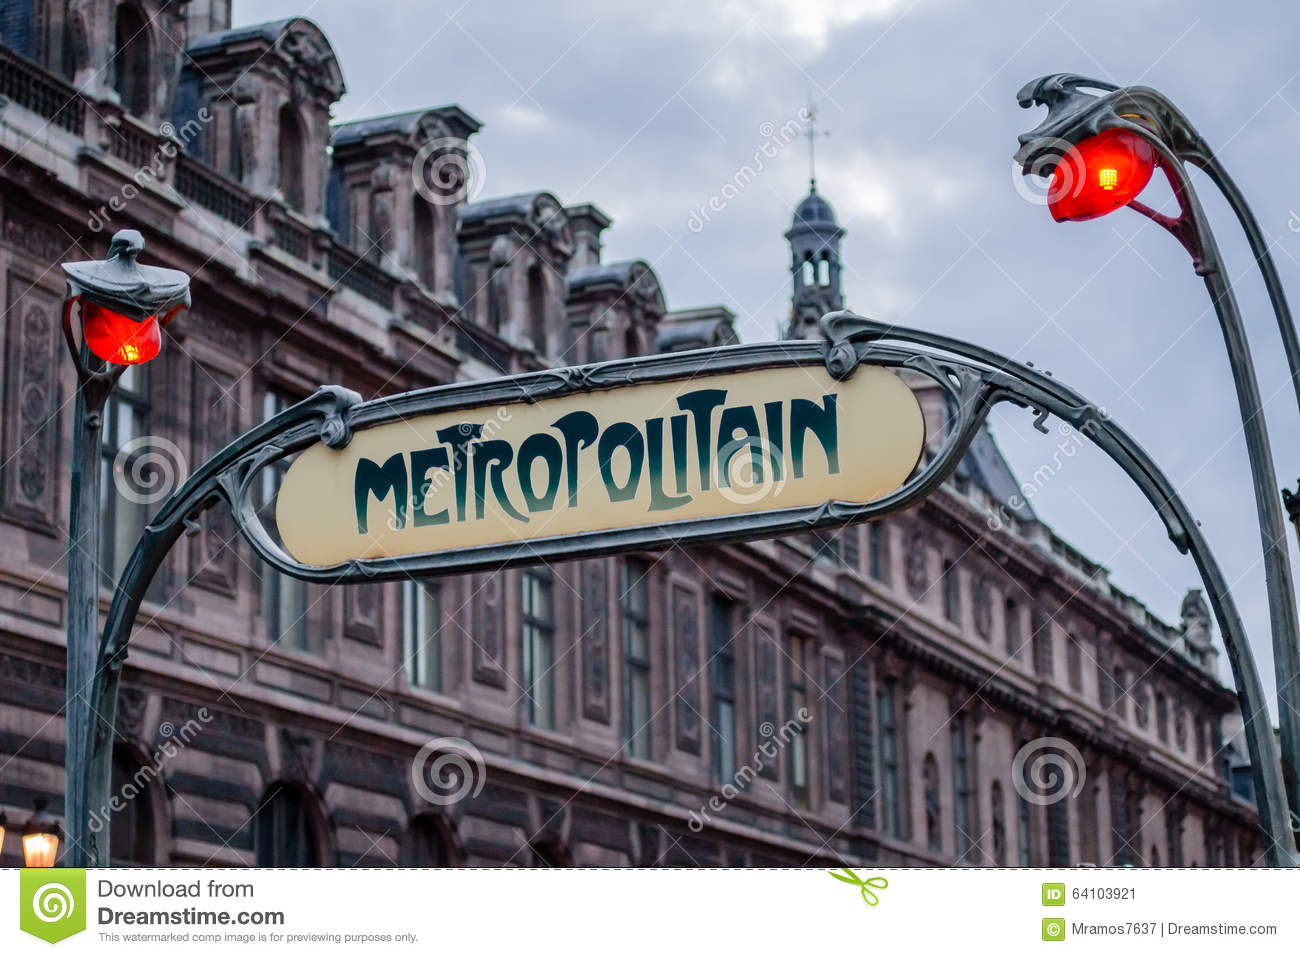 art deco metro station sign in paris france stock image. Black Bedroom Furniture Sets. Home Design Ideas